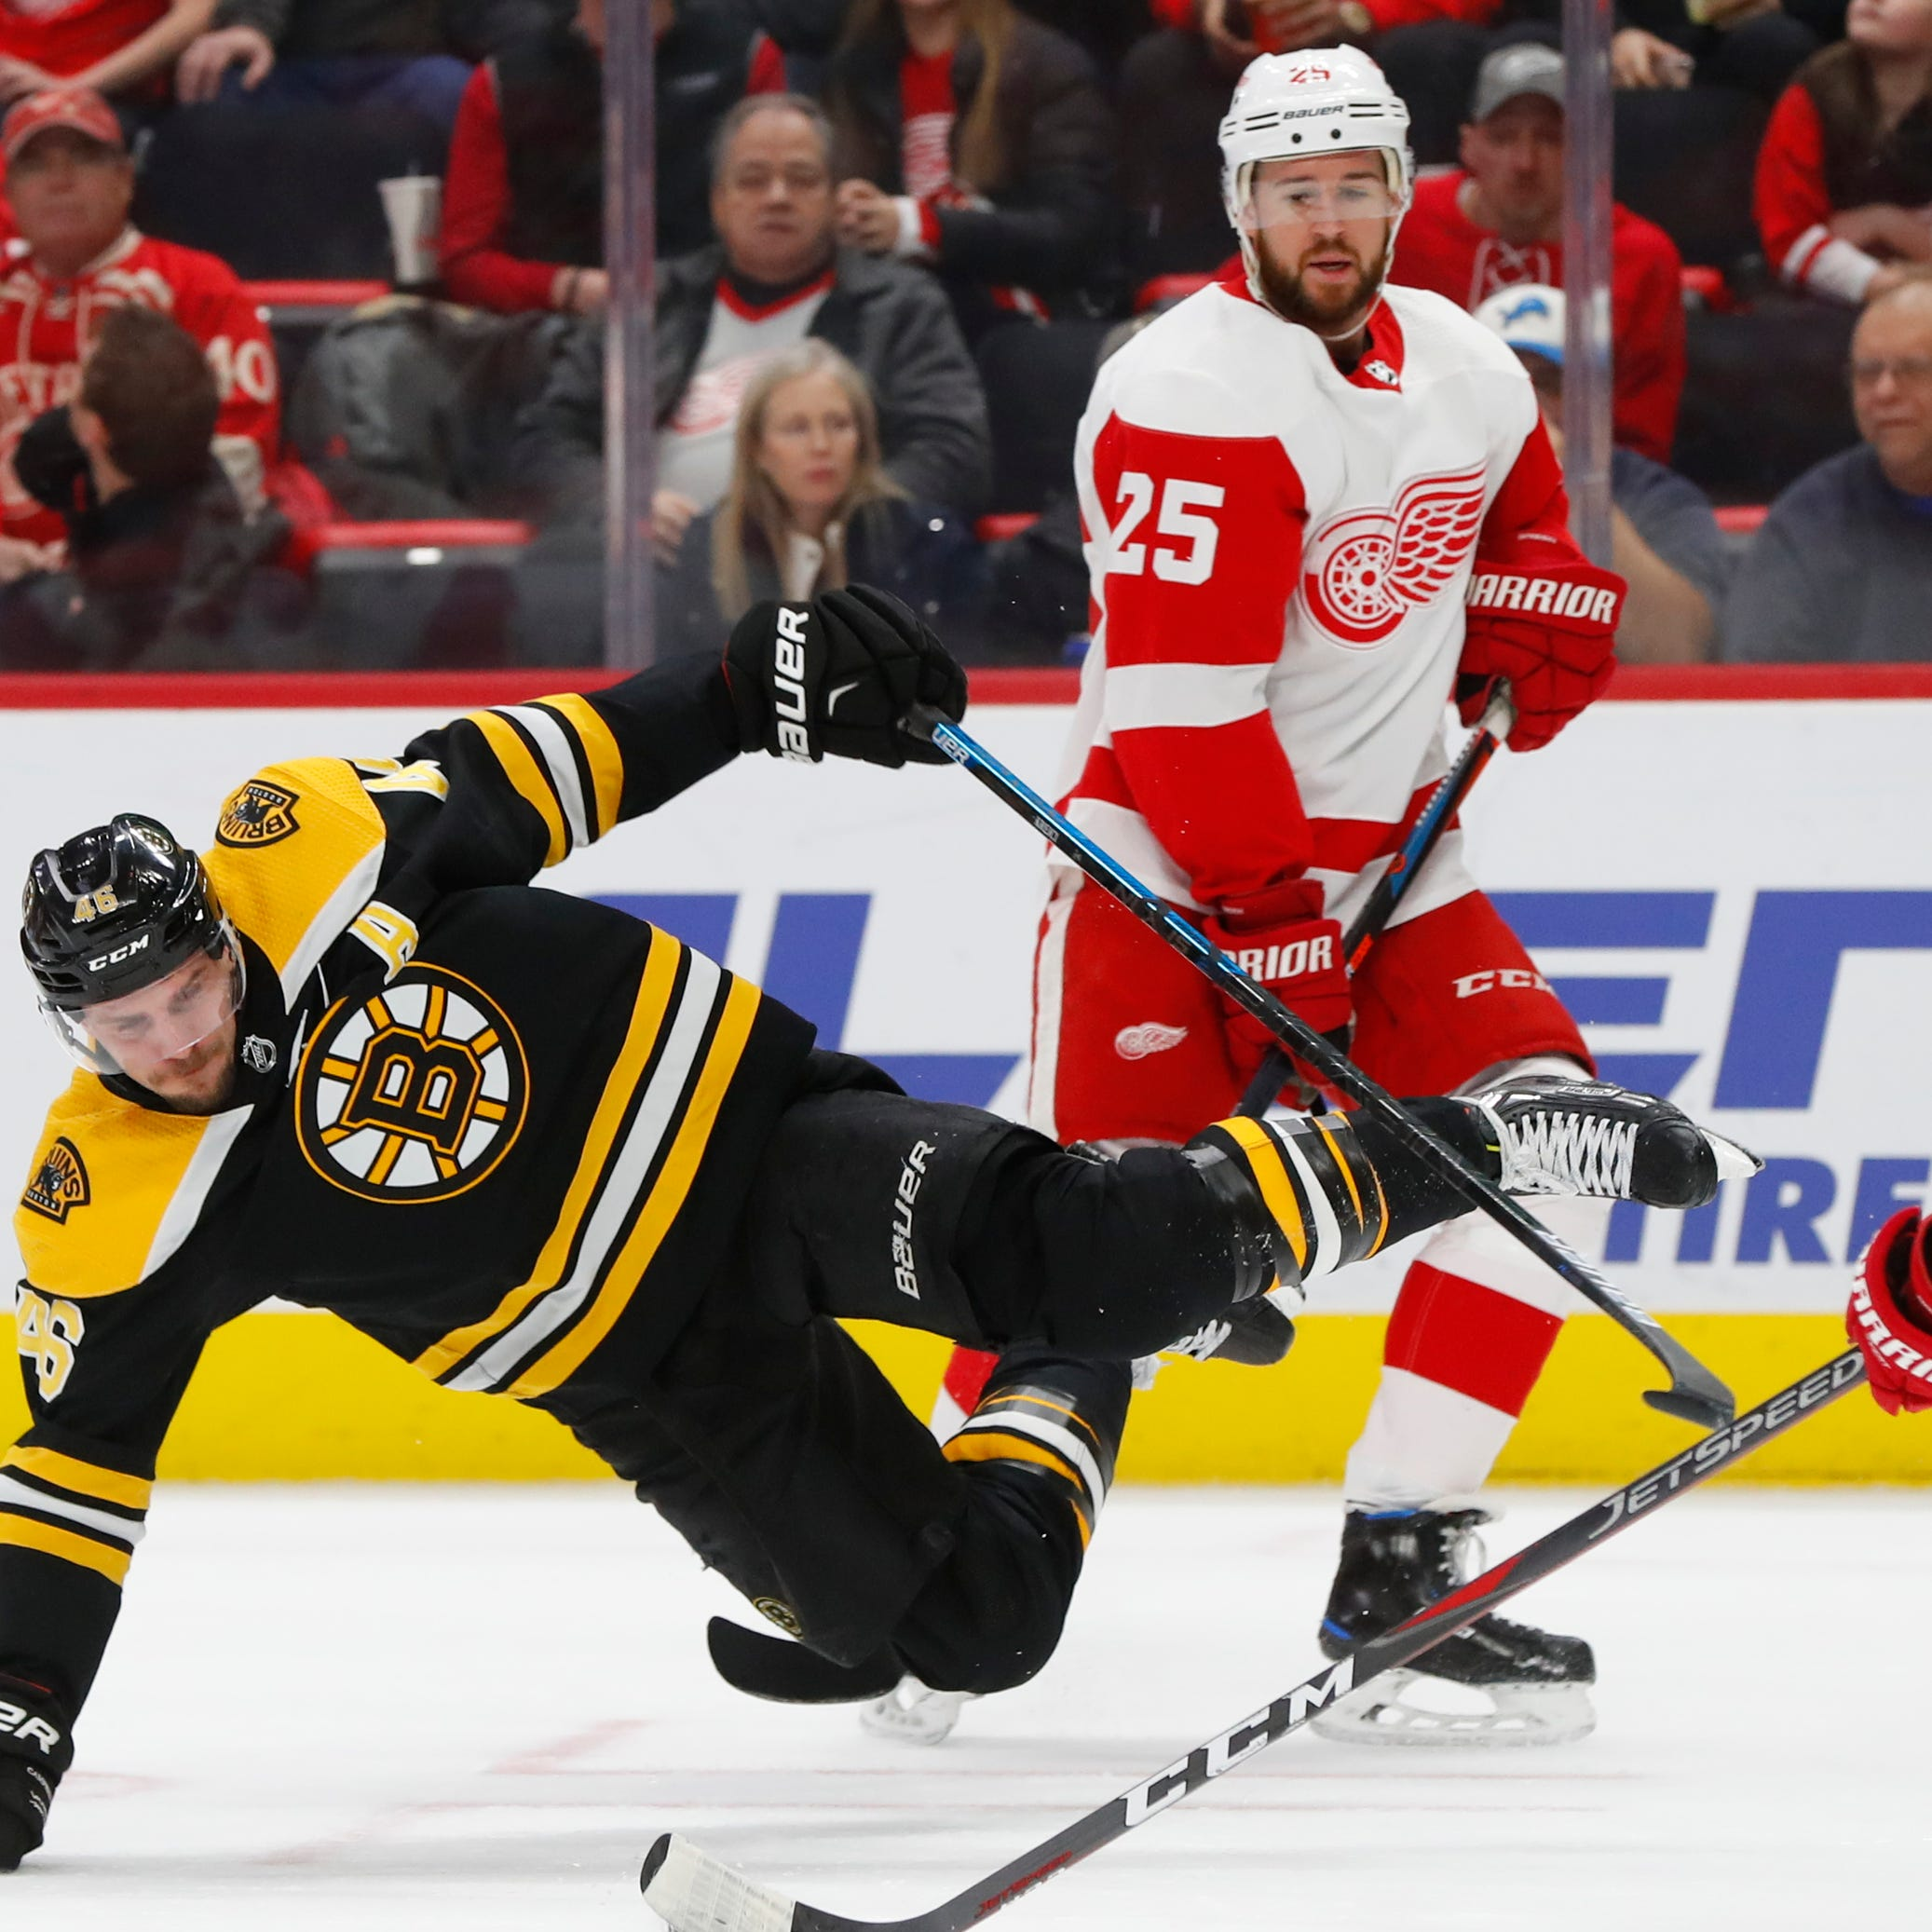 Detroit Red Wings overcome another deficit, beat Boston Bruins in OT, 3-2